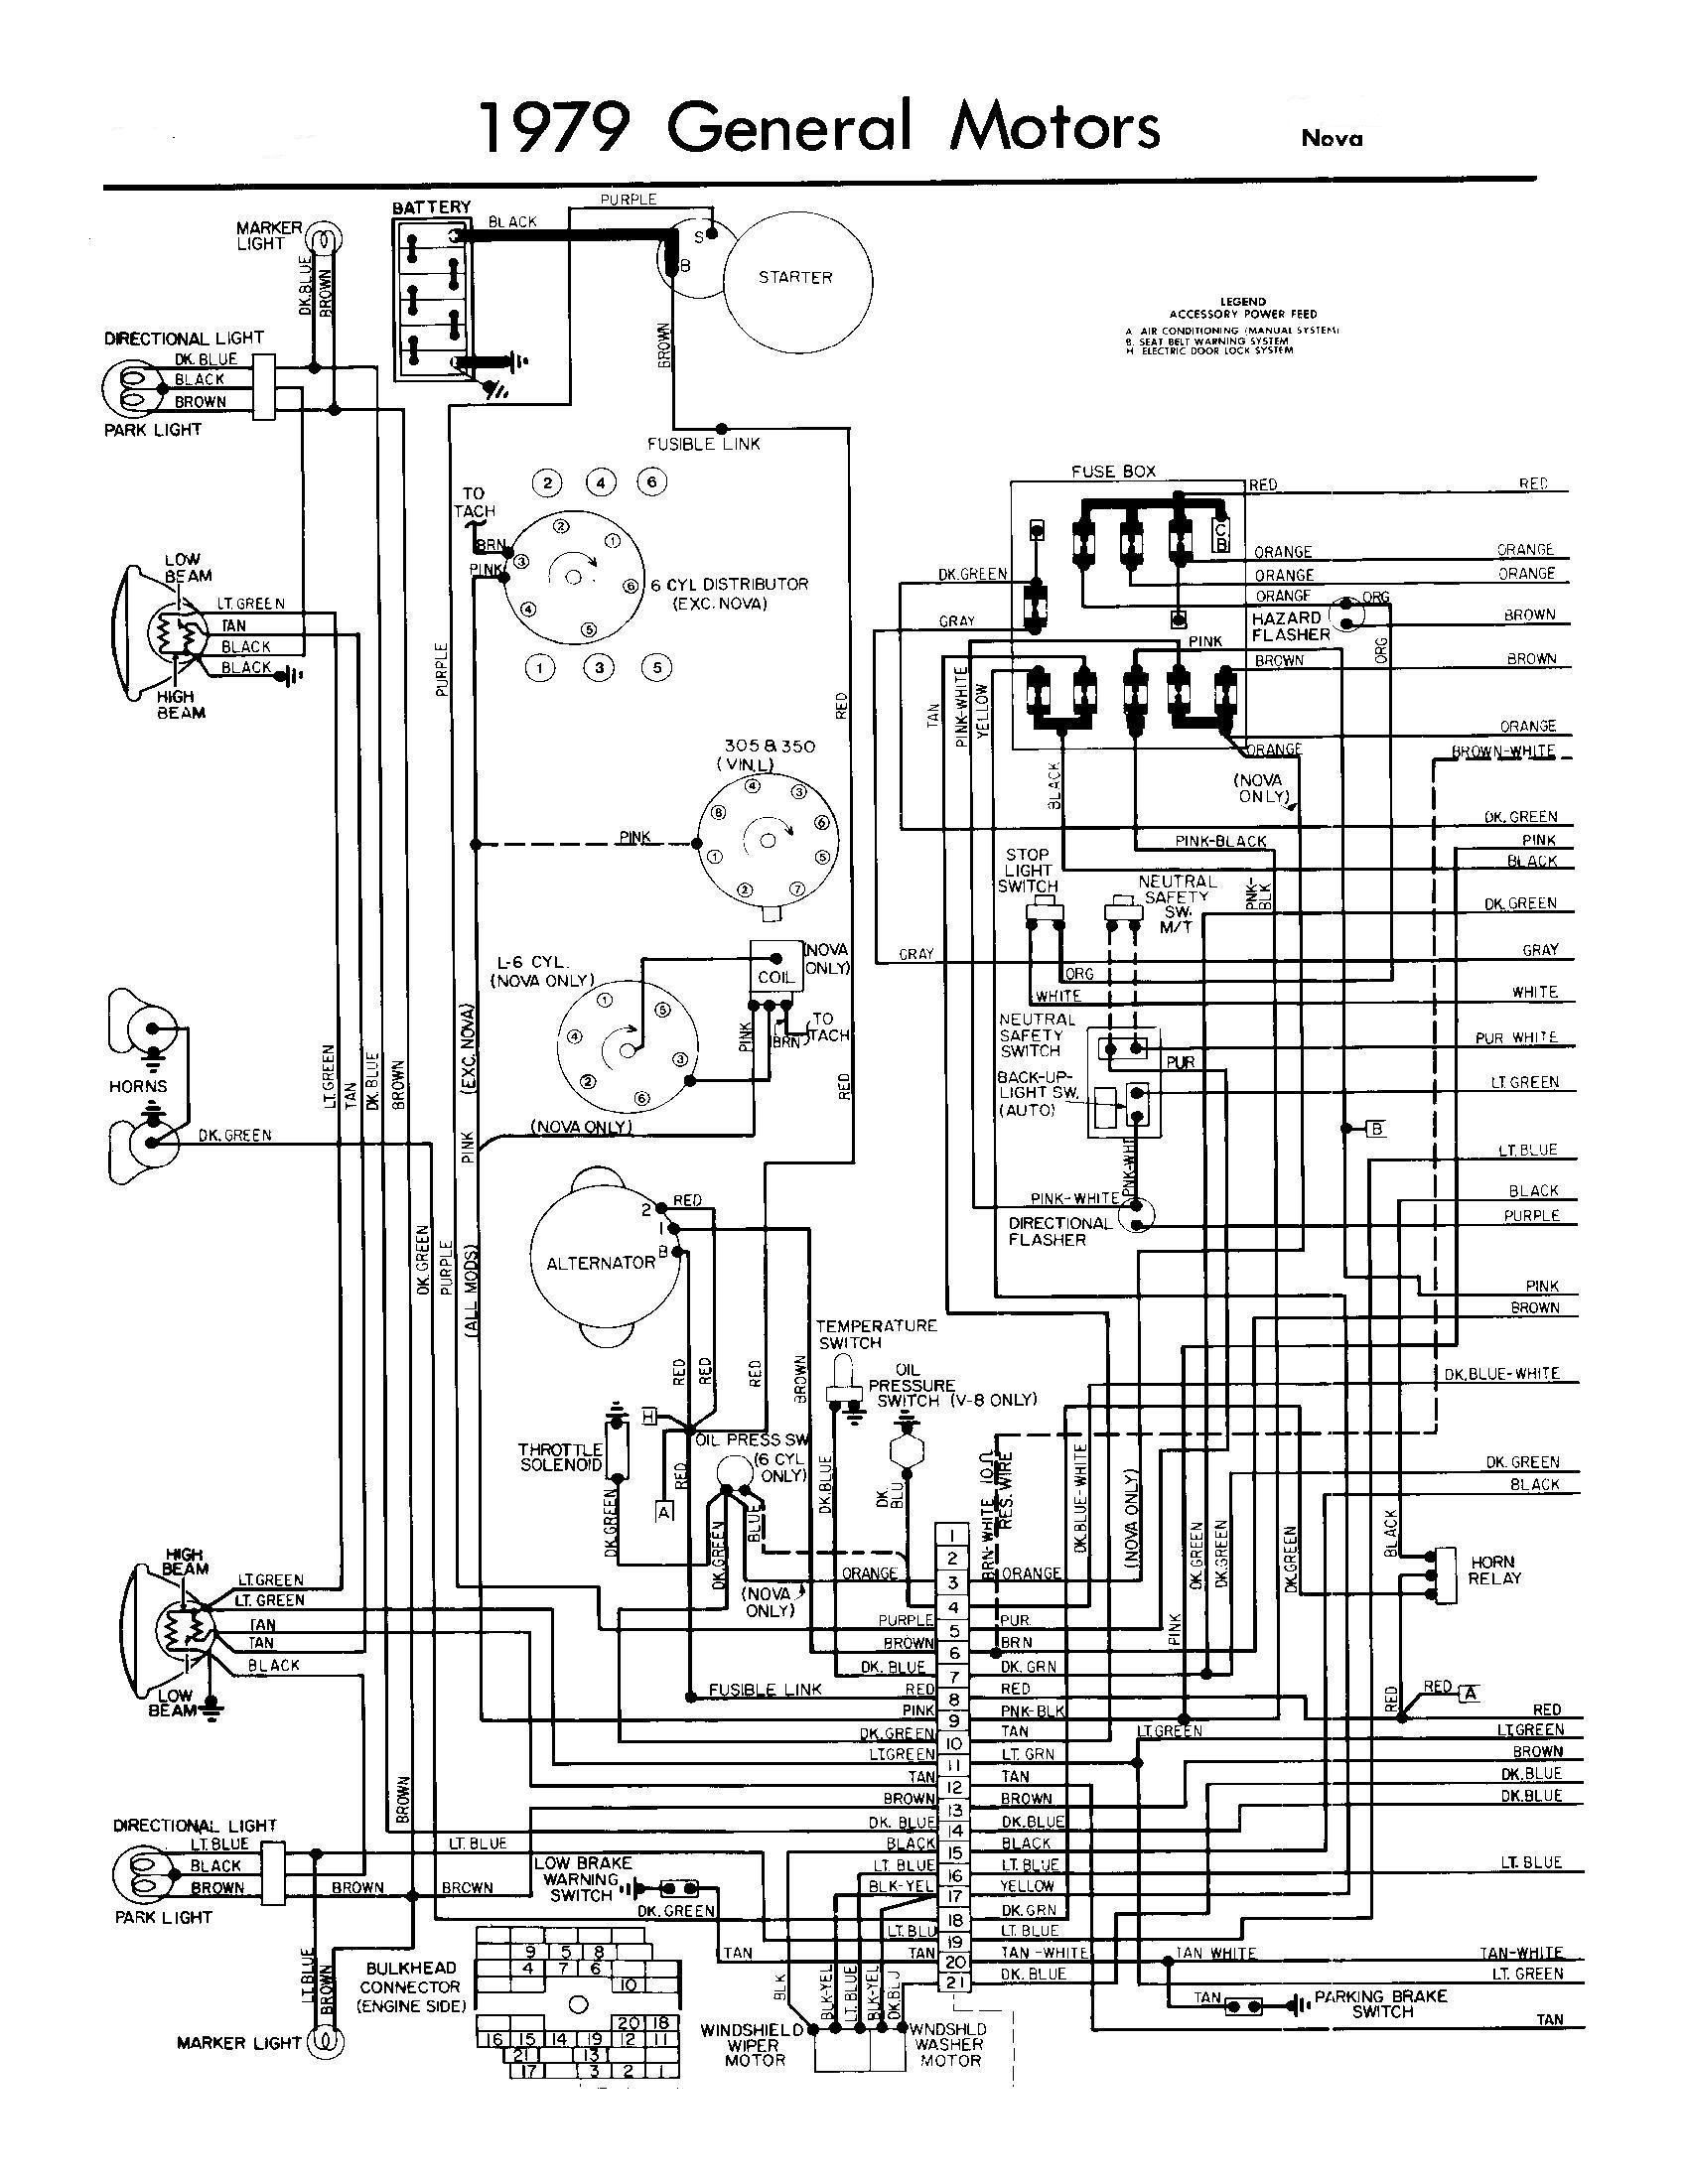 af30d80785d45bfeba8f1db47439920a 79 chevy truck wiring diagram 82 chevy truck wiring diagram 1973 chevy nova wiring harness at mifinder.co